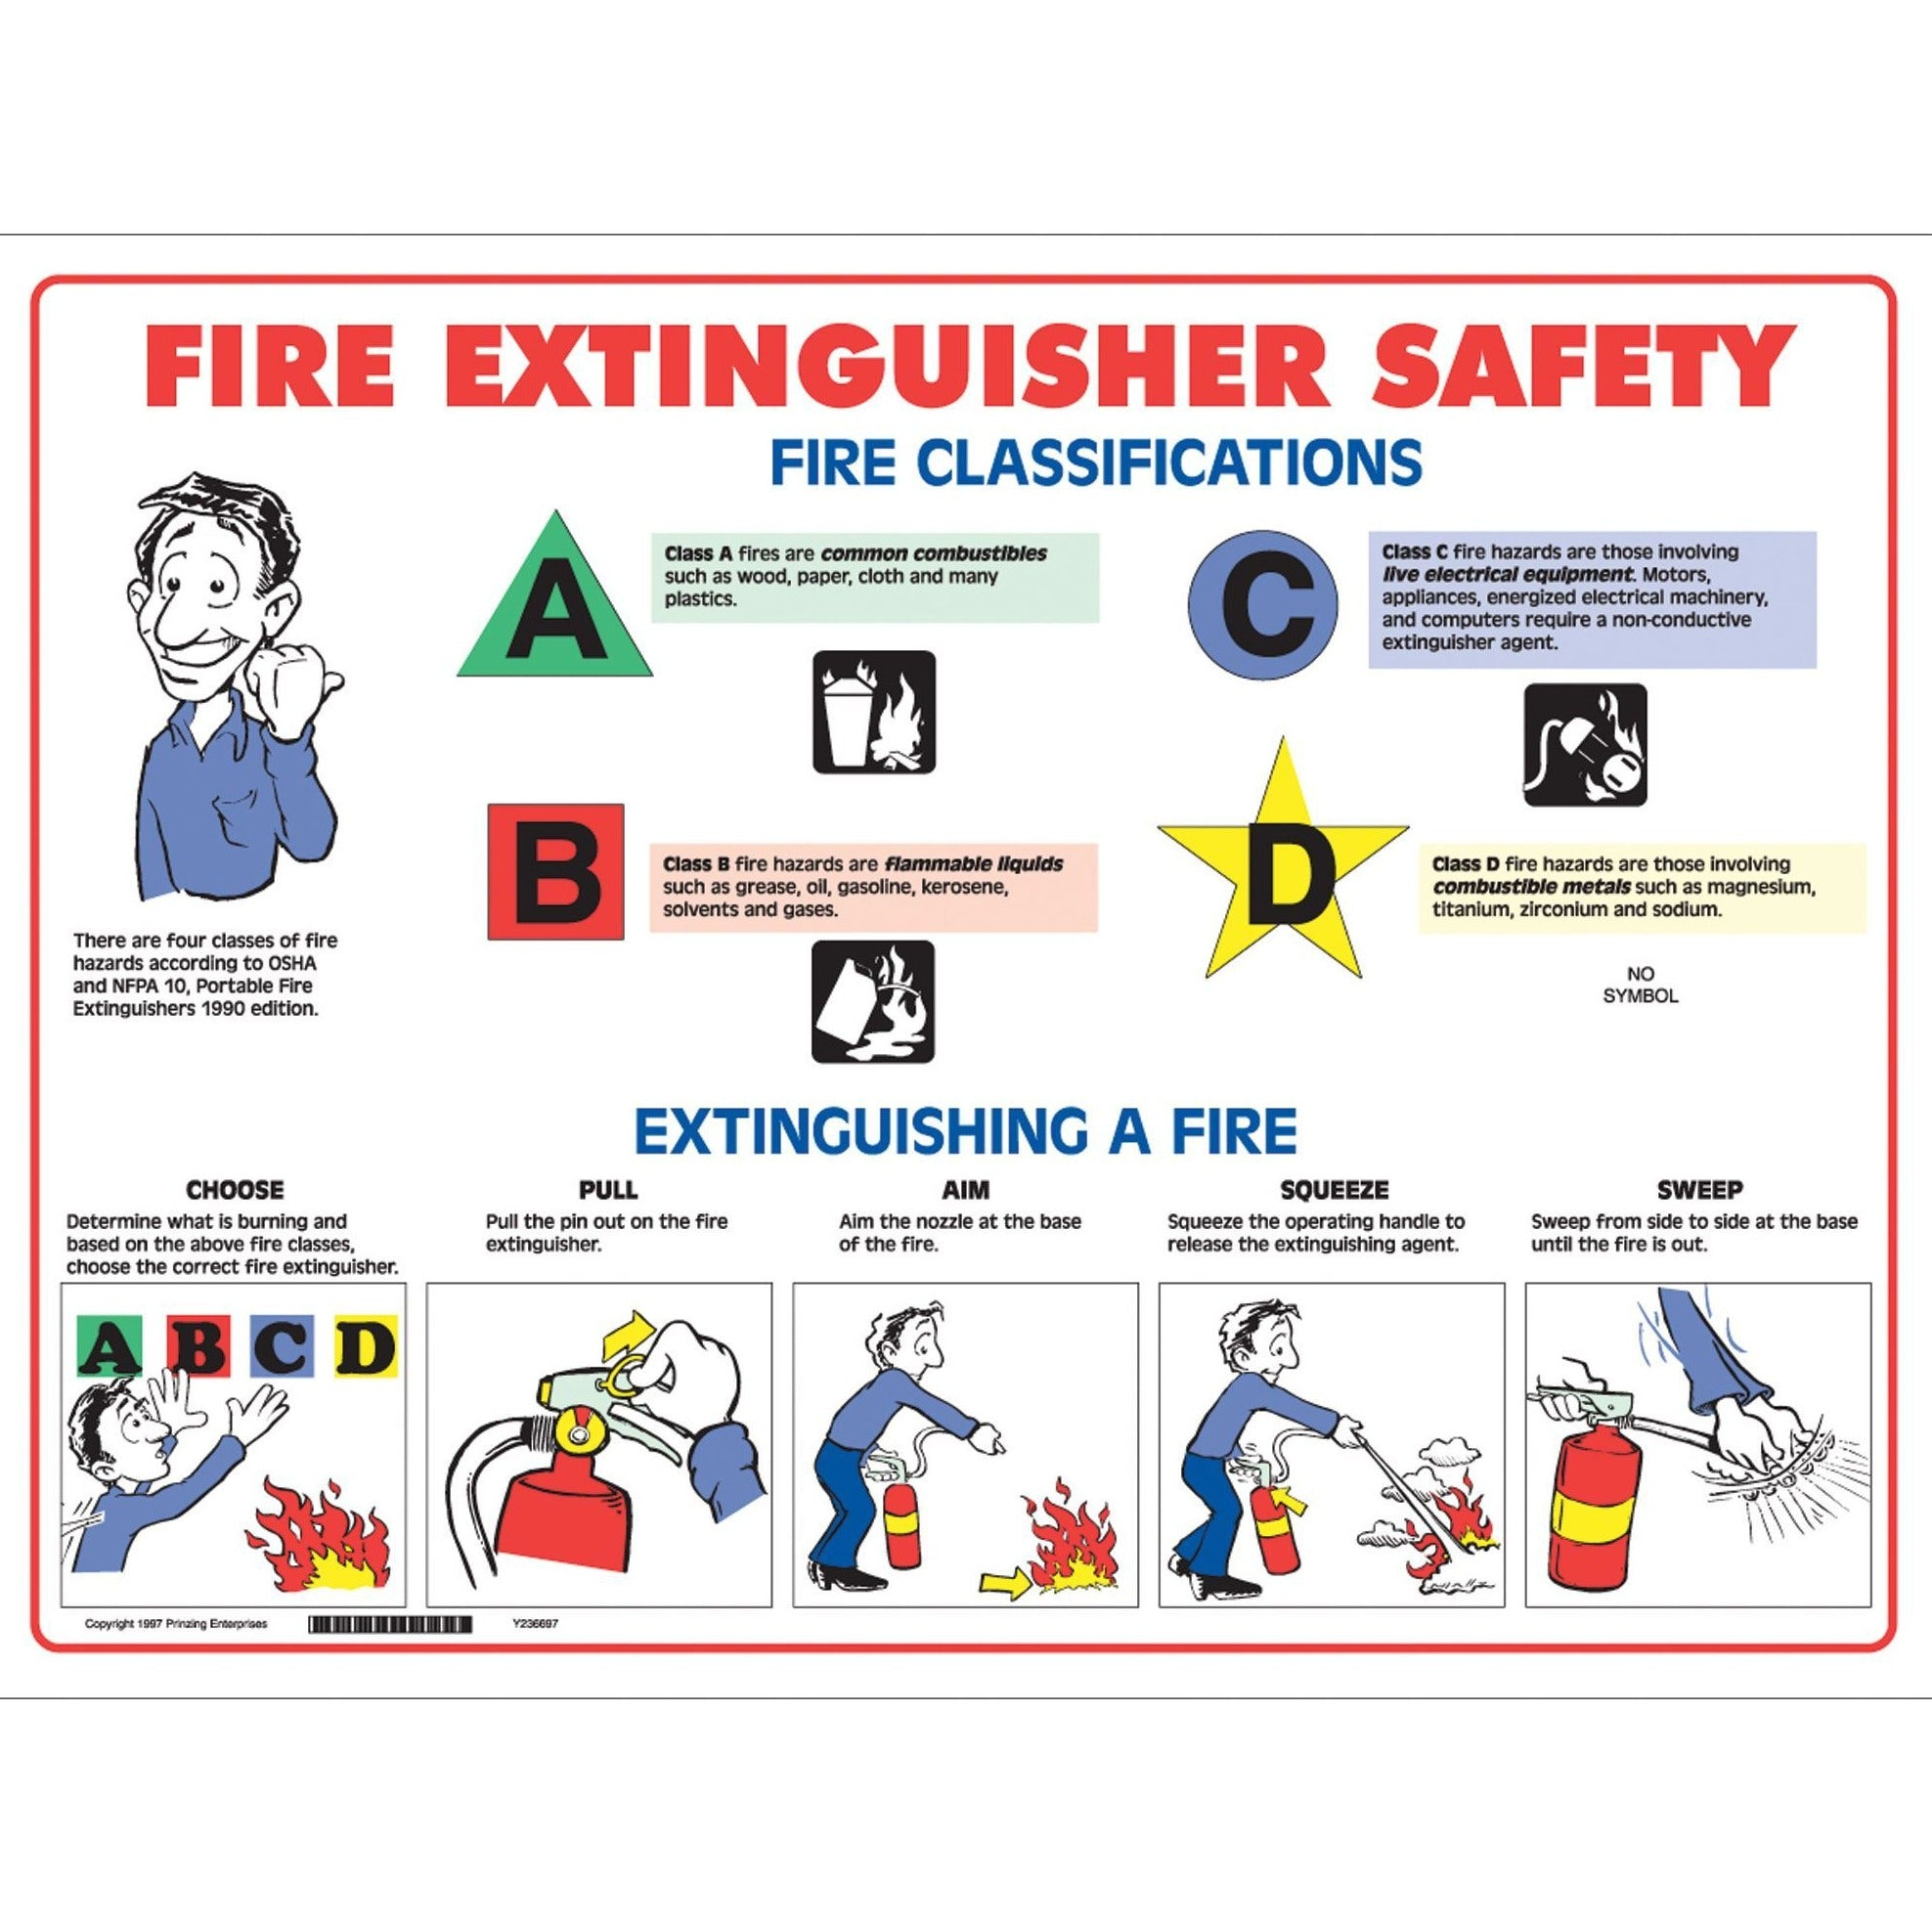 Reference Poster for Fire Extinguisher Safety